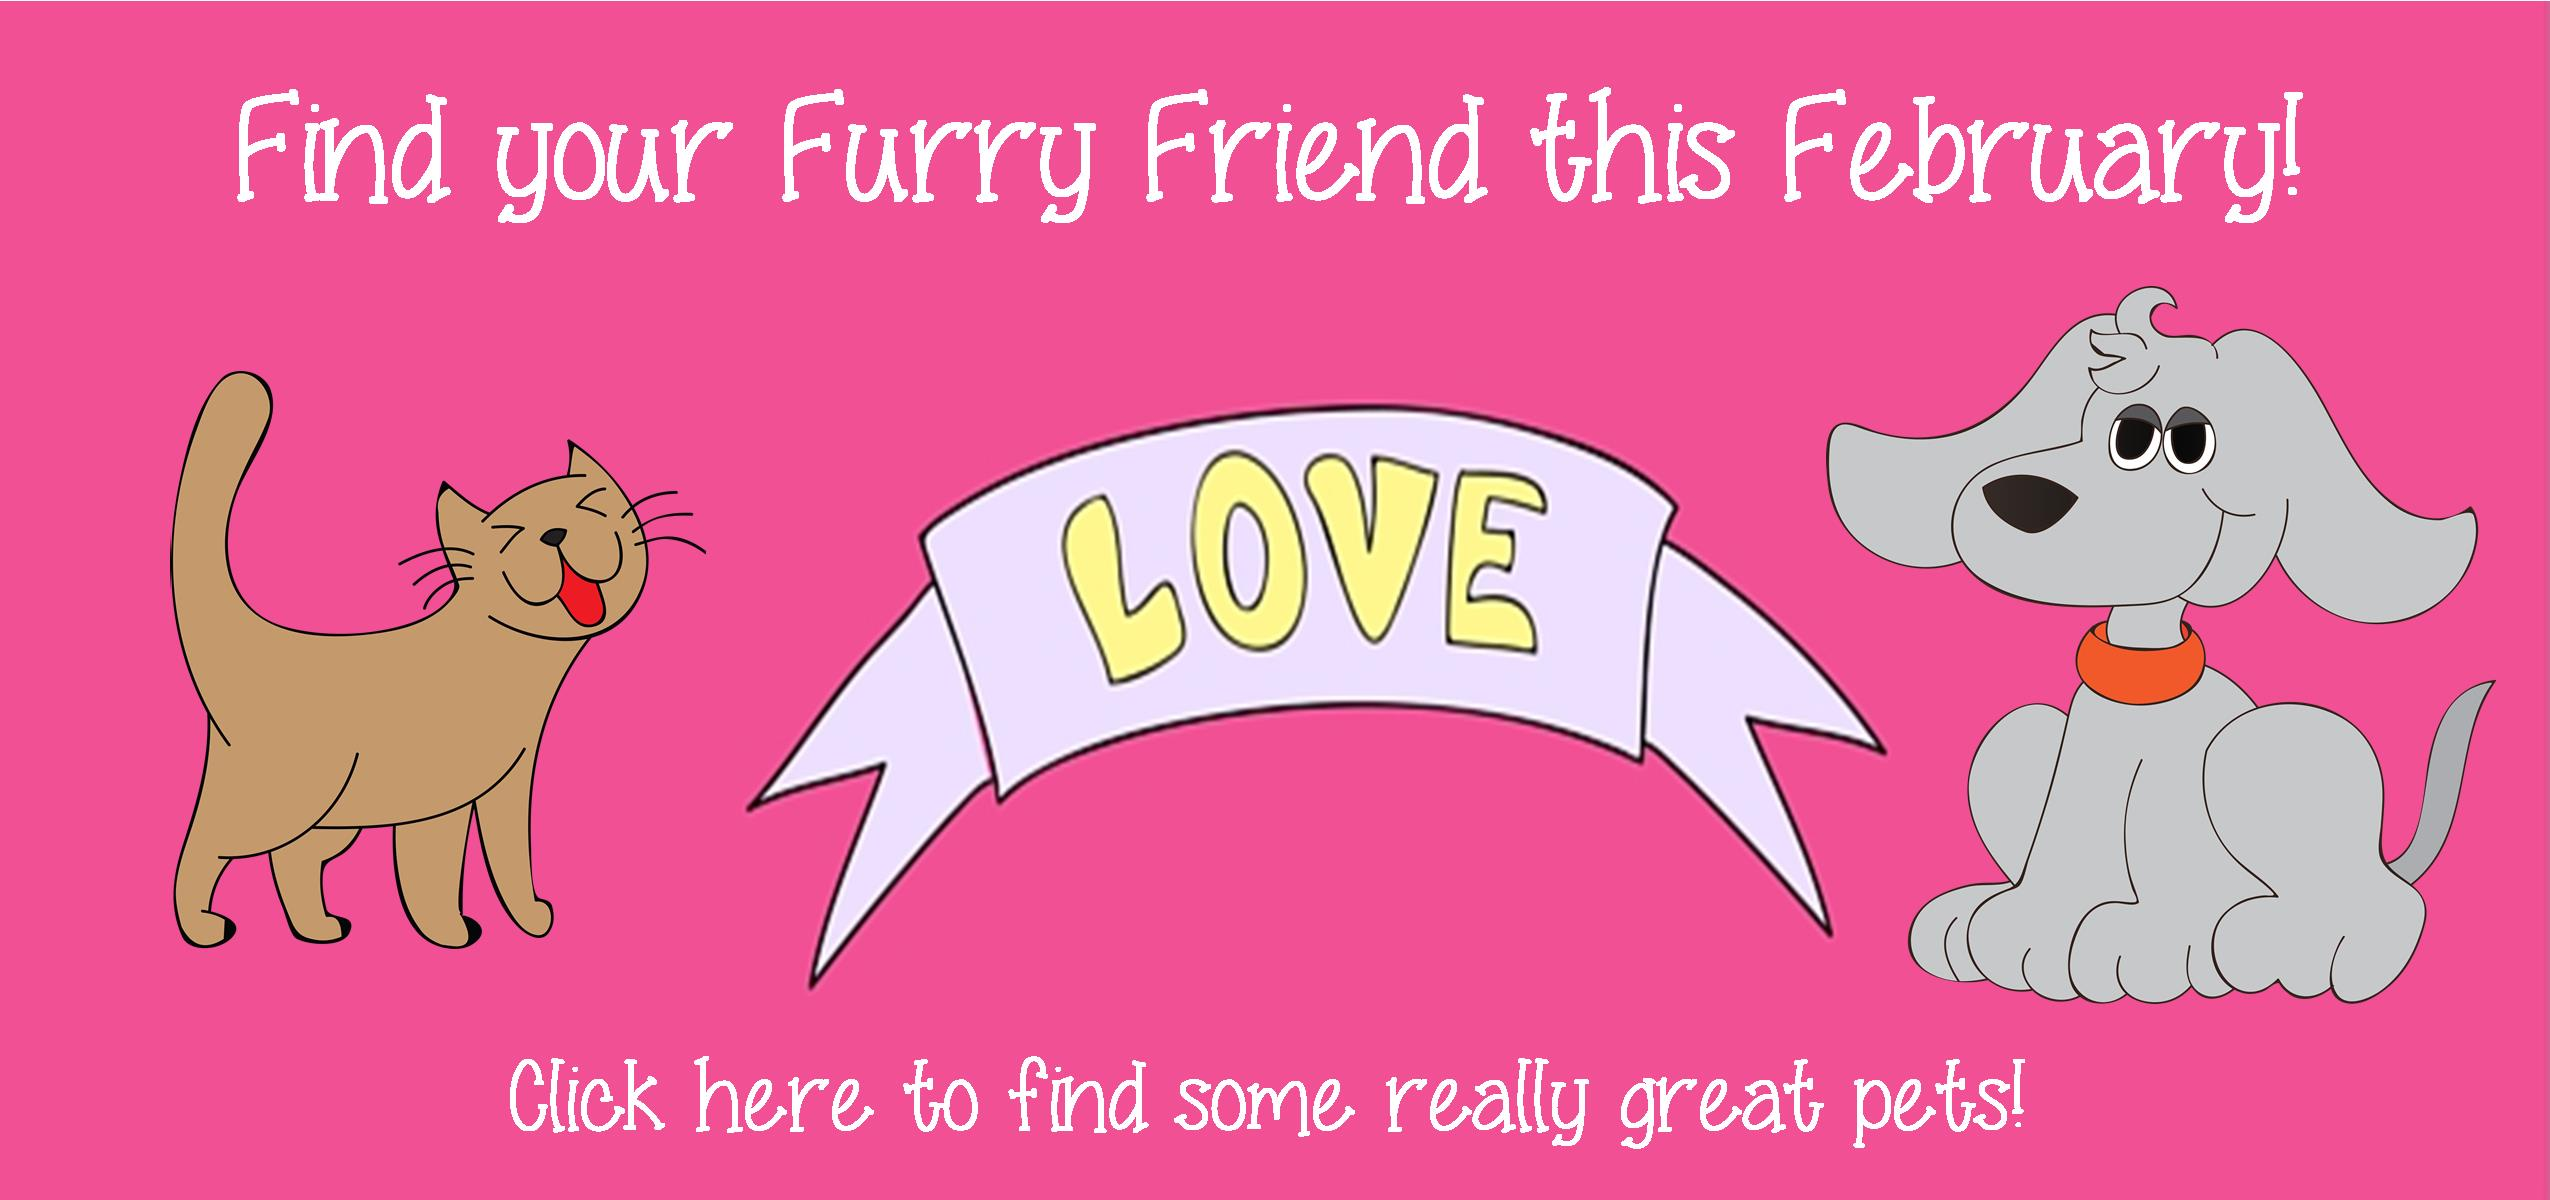 Find Your Furry Friend This February